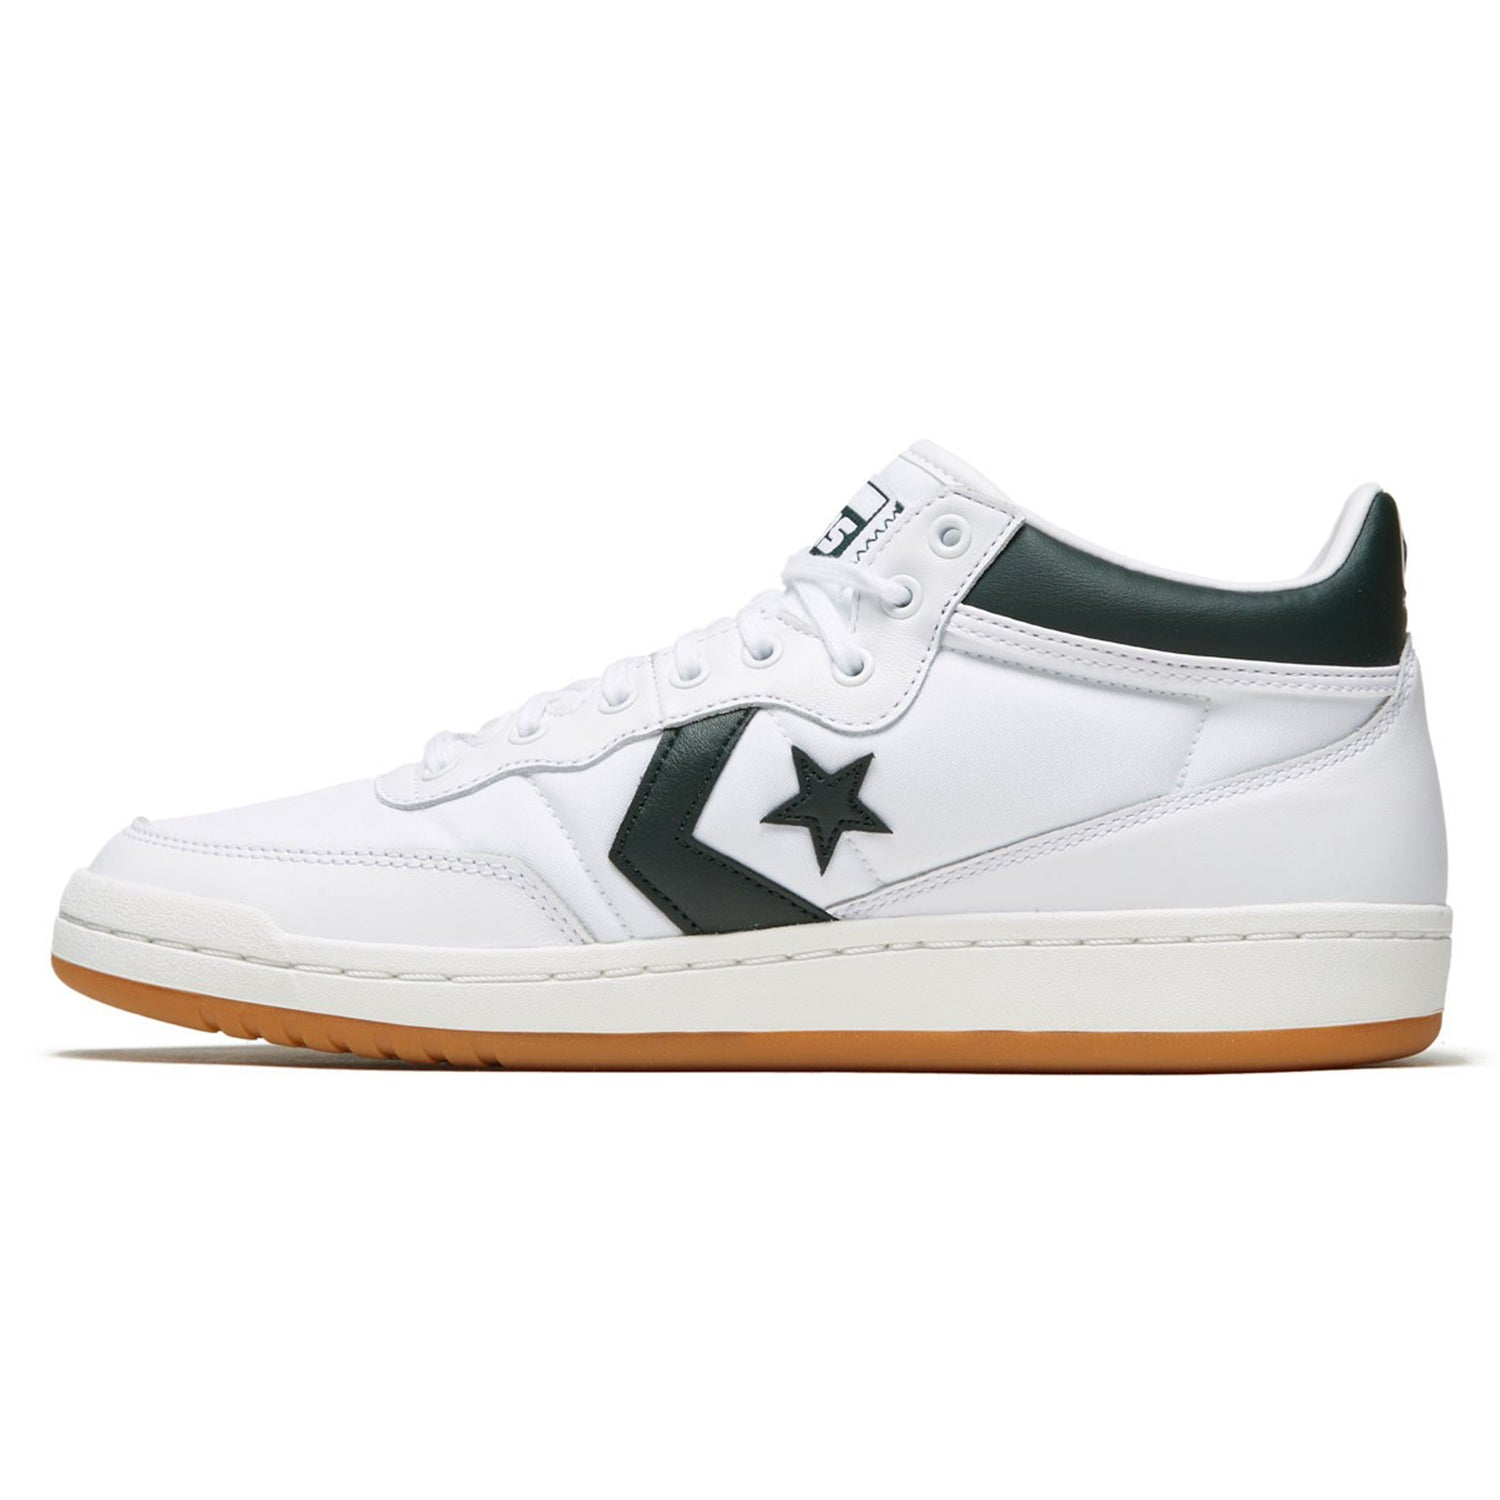 Converse CONS Fastbreak Pro Mid White/Deep Emerald